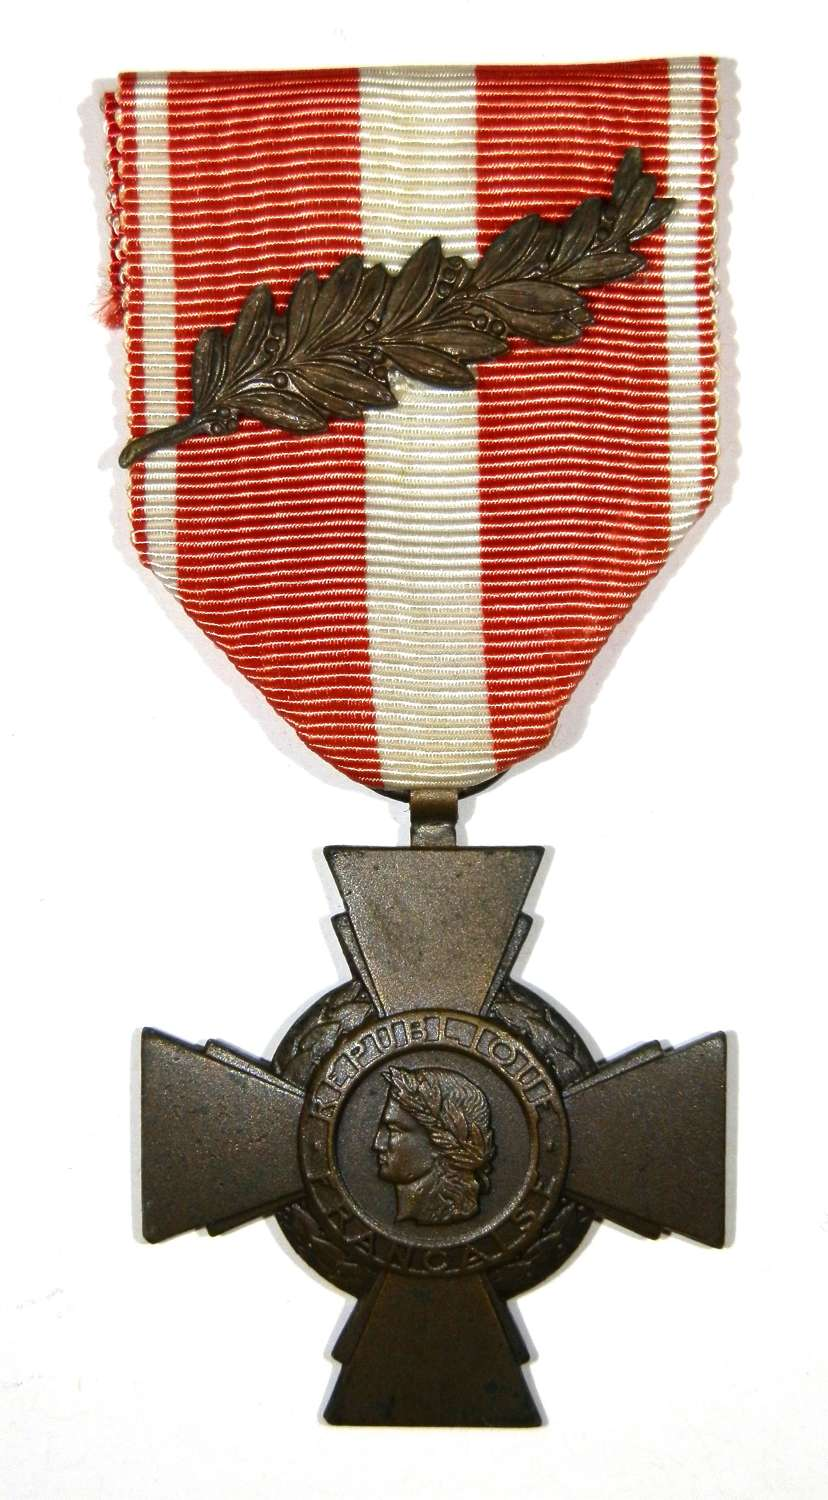 Croix De La Valeur Militarire. 'French Military Cross of Valour'.